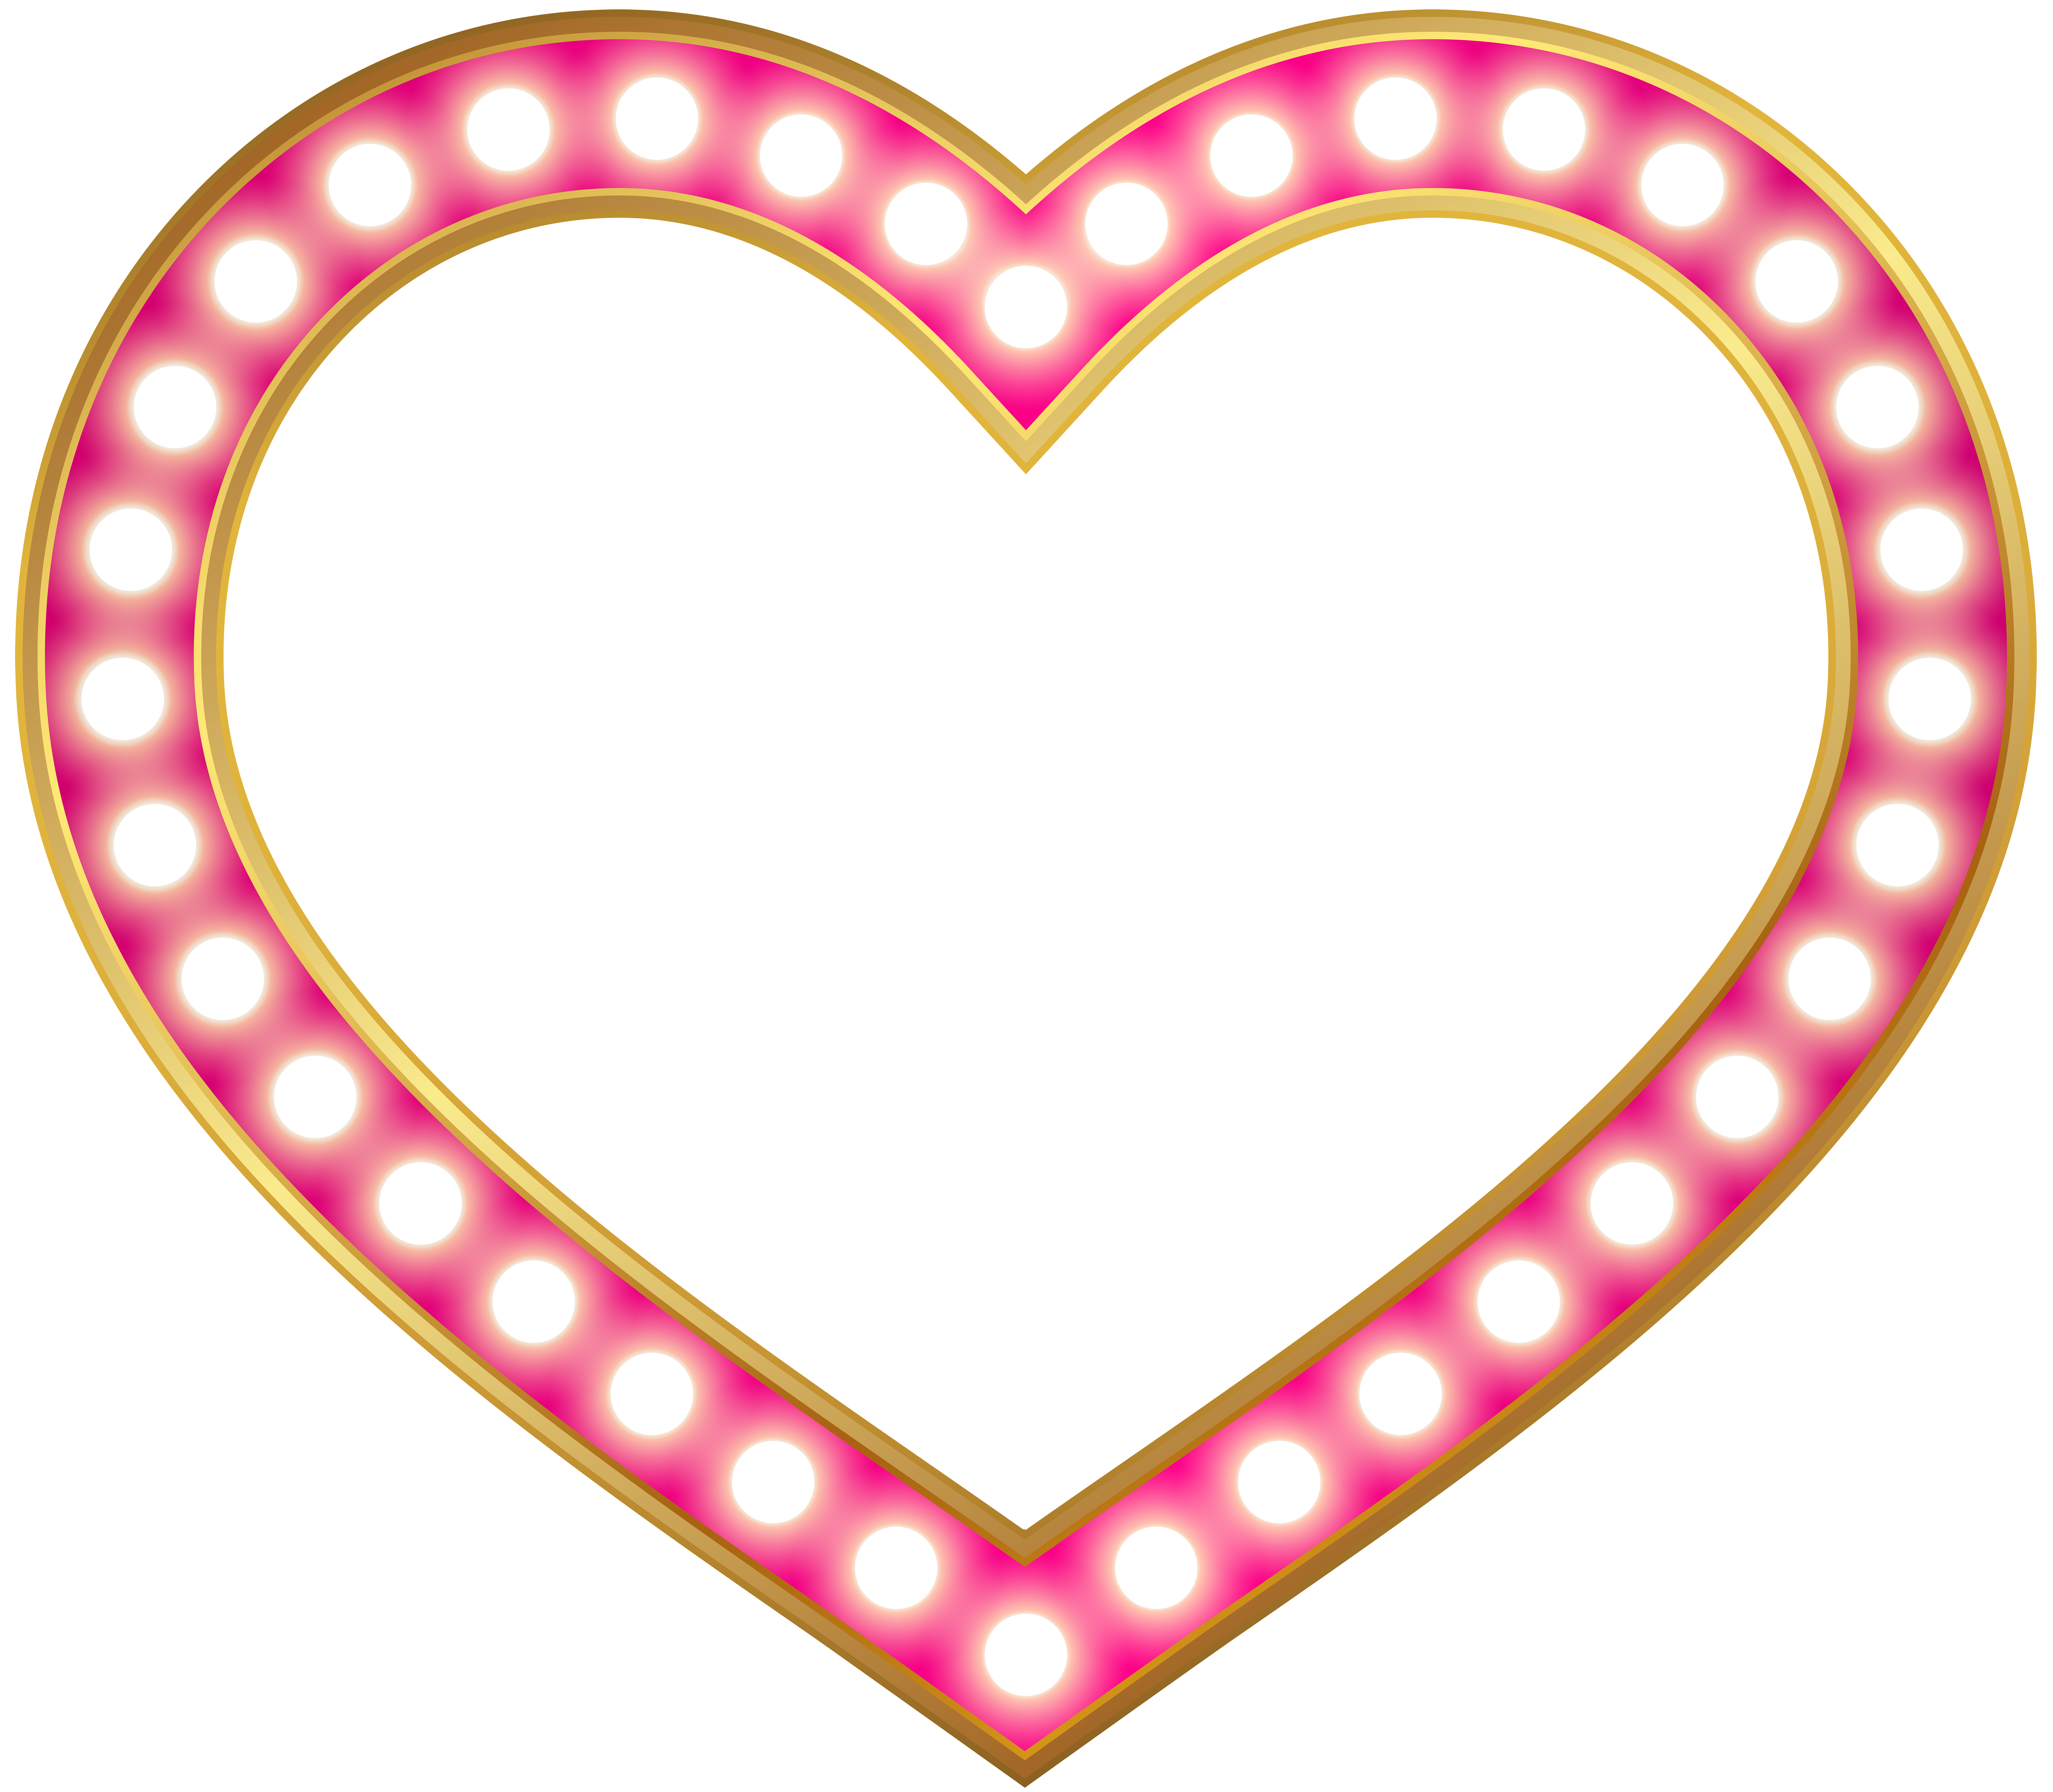 Glowing heart png. Border frame clip art